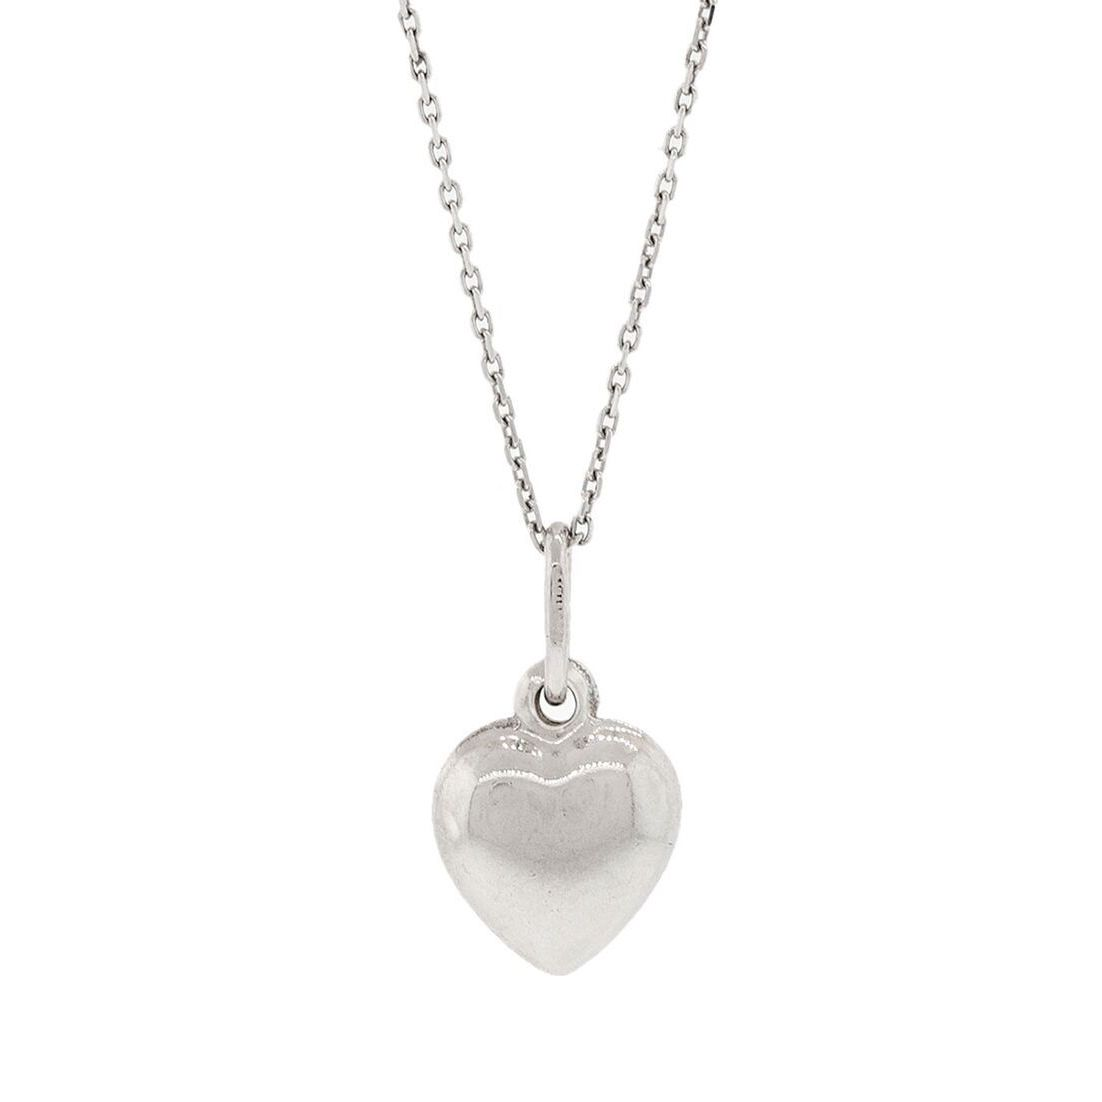 Pori sterling silver solid heart pendant necklace free shipping on pori sterling silver solid heart pendant necklace free shipping on orders over 45 overstock 18116126 mozeypictures Gallery